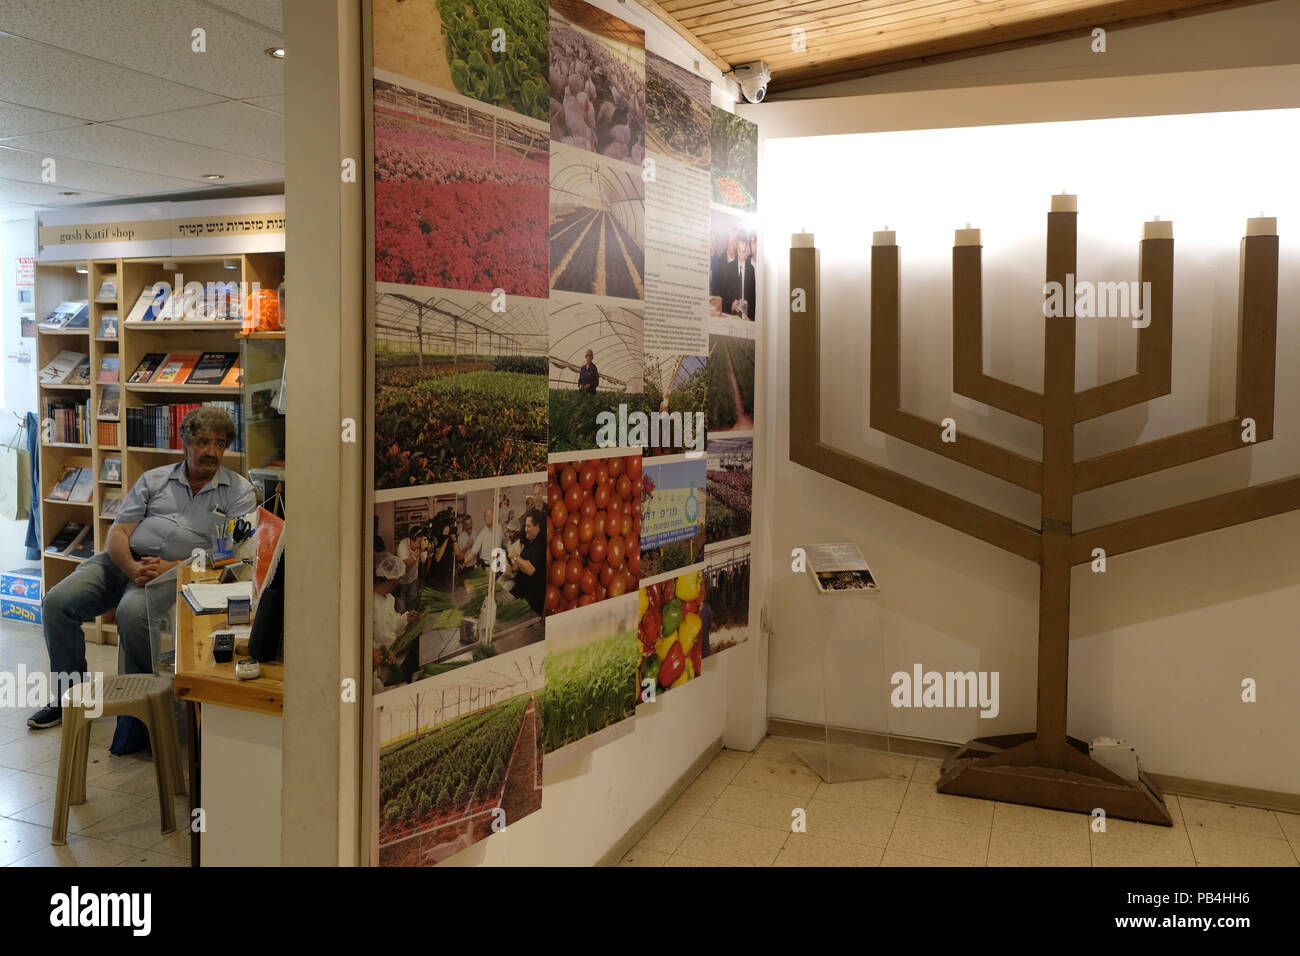 A menorah from Netzarim synagogue of the former Jewish settlement in Gaza Strip and photos which showcase the agricultural Israeli communities in that area displayed in Gush Katif Museum dedicated to the former Jewish settlements in the Gaza Strip or, to use the museum's language, the evacuation or deportation of the Jewish settlers who called the strip their home for more than thirty years. West Jerusalem , Israel. The Gush Katif settlers were evacuated during Israel's unilateral pullout from the Gaza Strip in 2005. - Stock Image